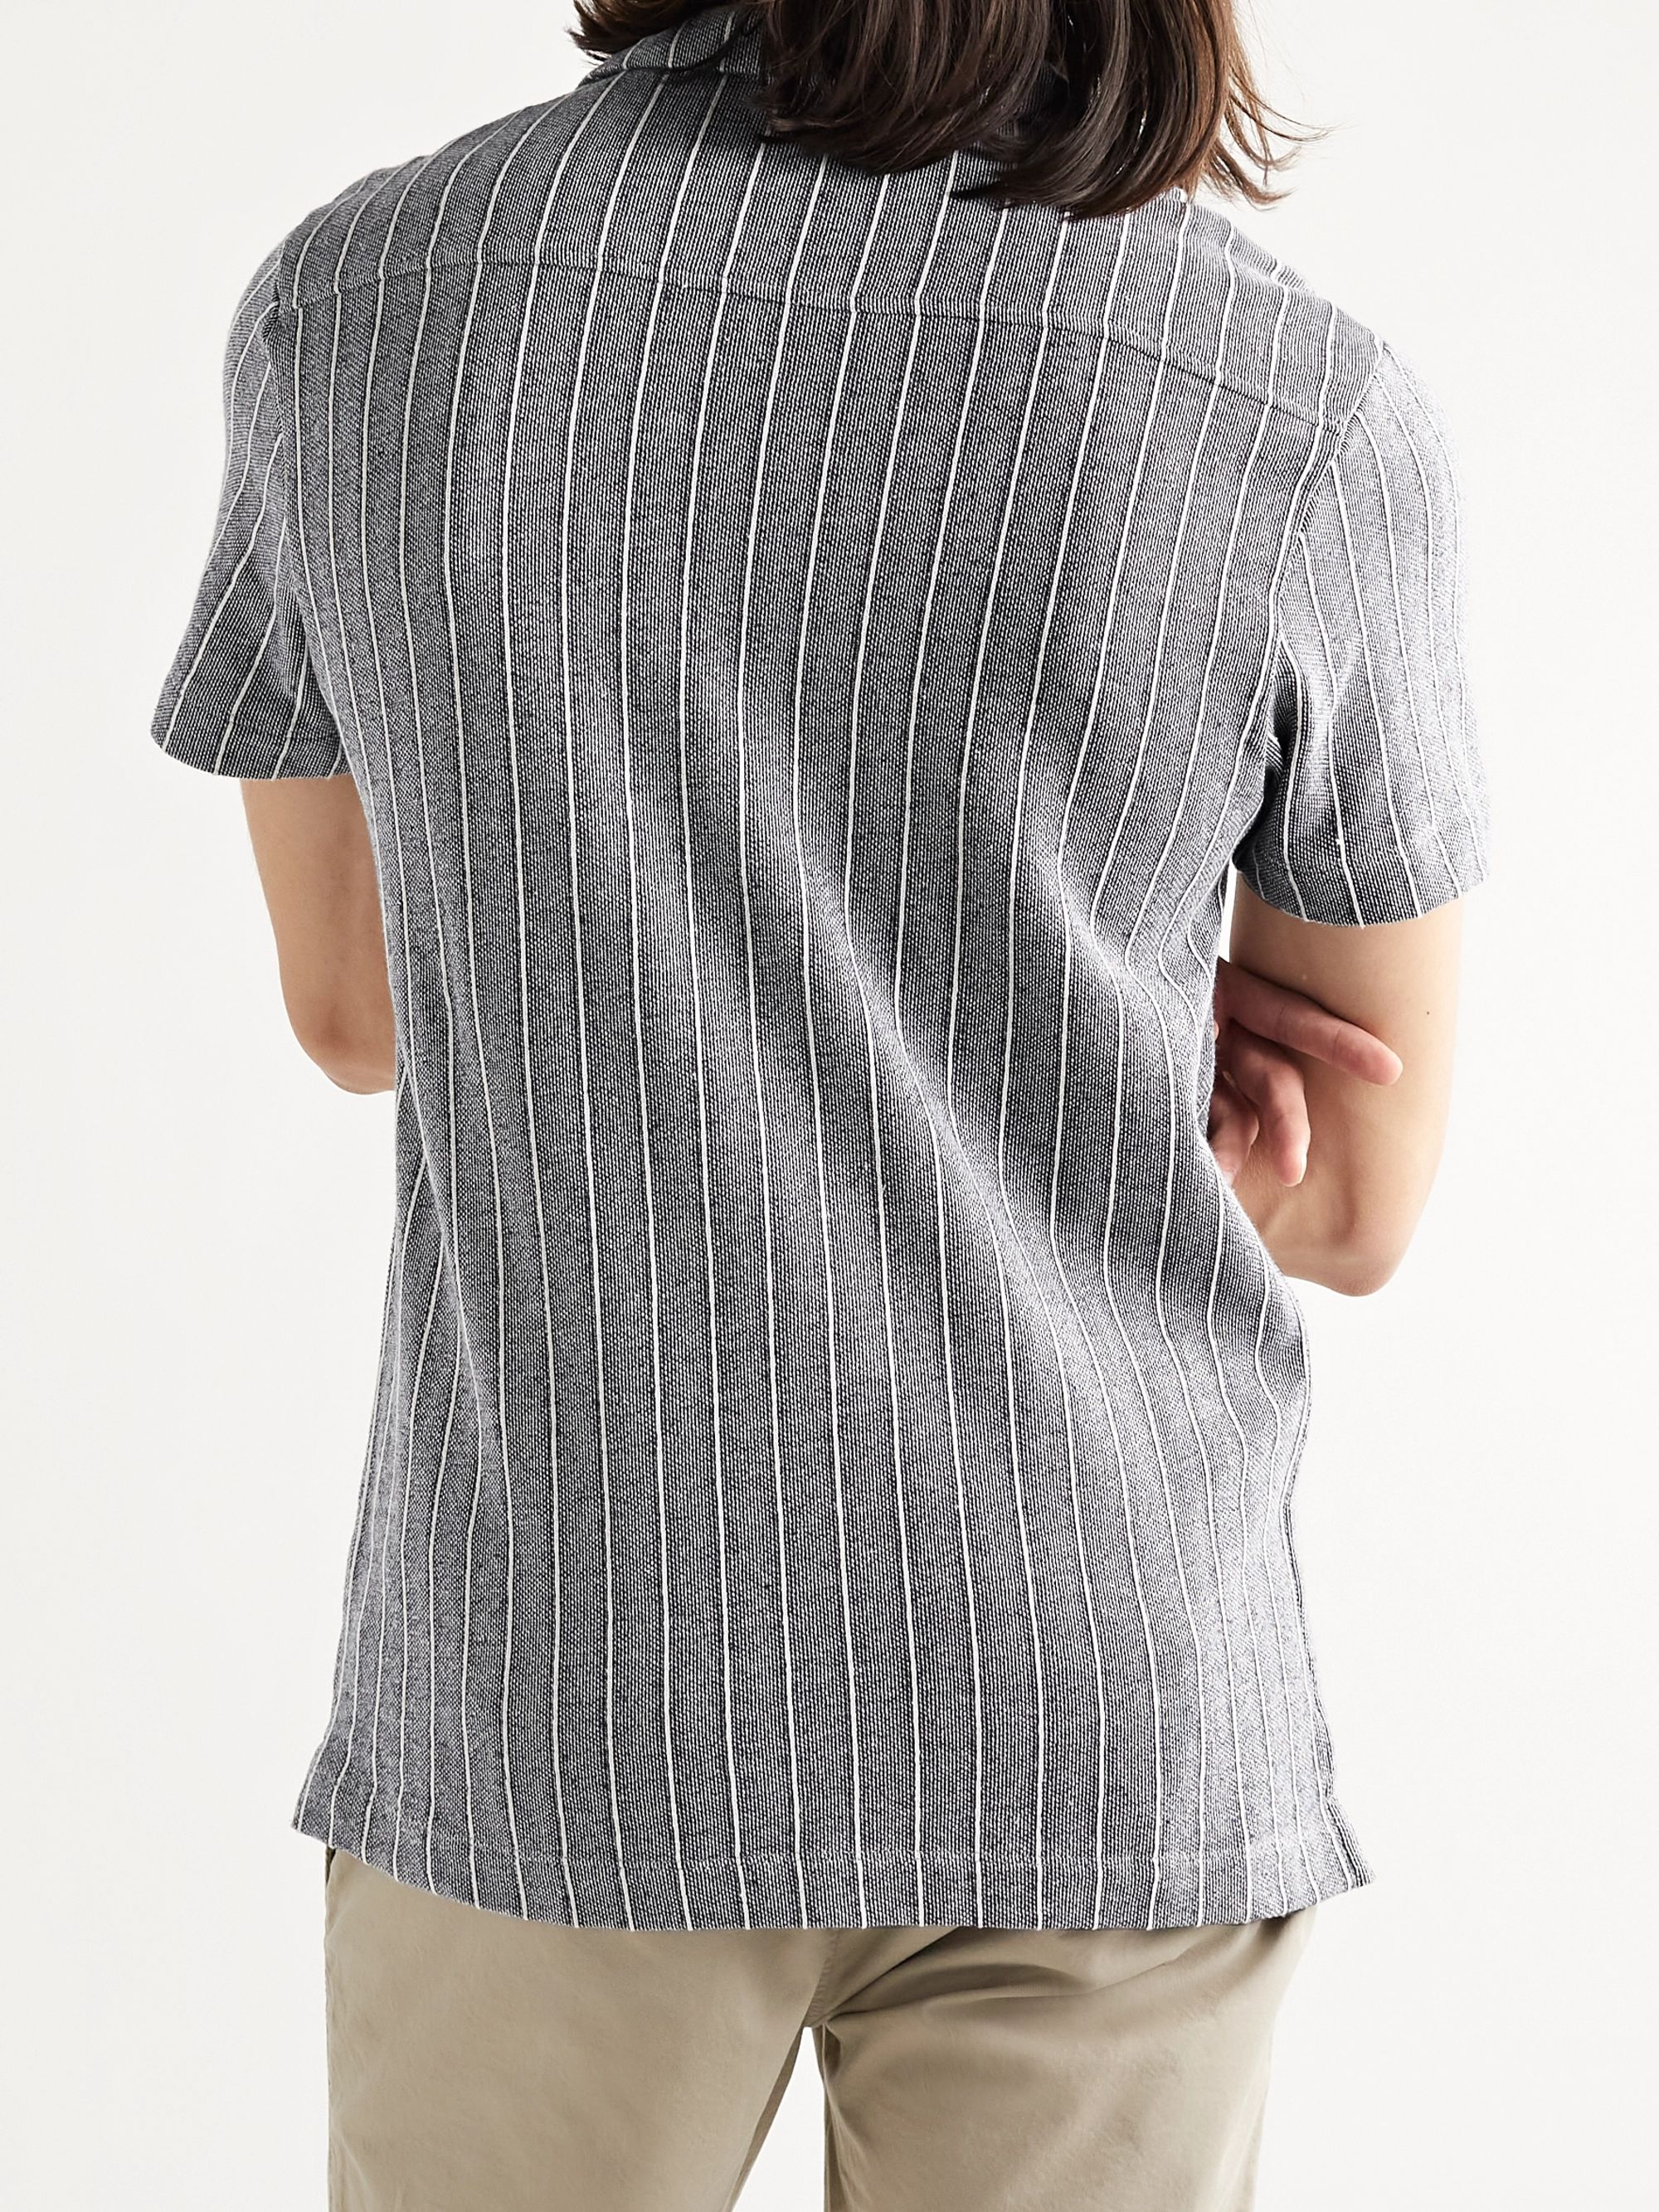 HAMILTON AND HARE Camp-Collar Striped Cotton Shirt